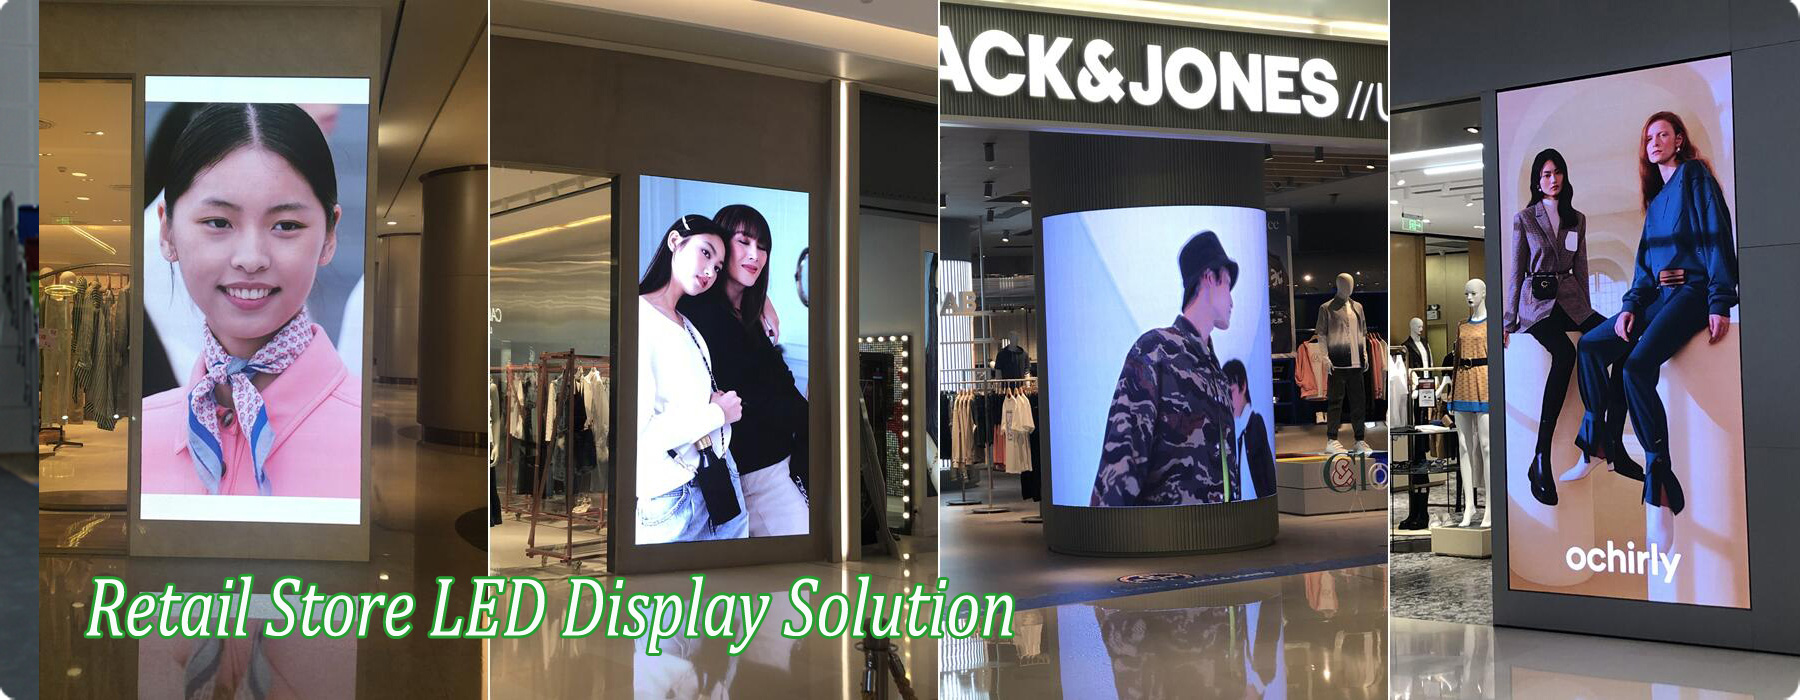 Retail-Store-LED-Display-Solution